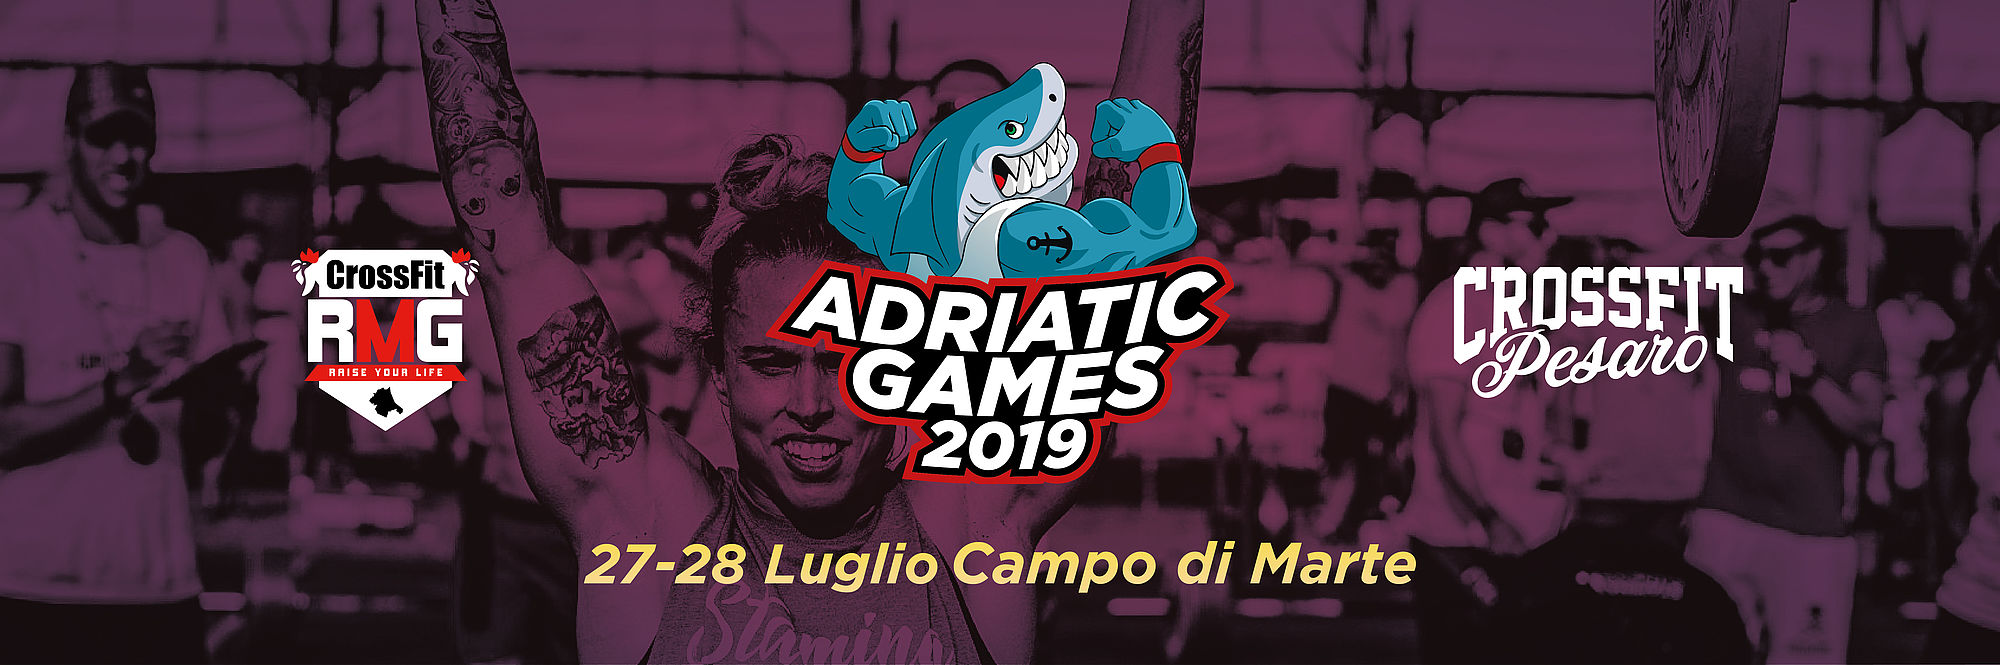 Immagine Adriatic Games 2019